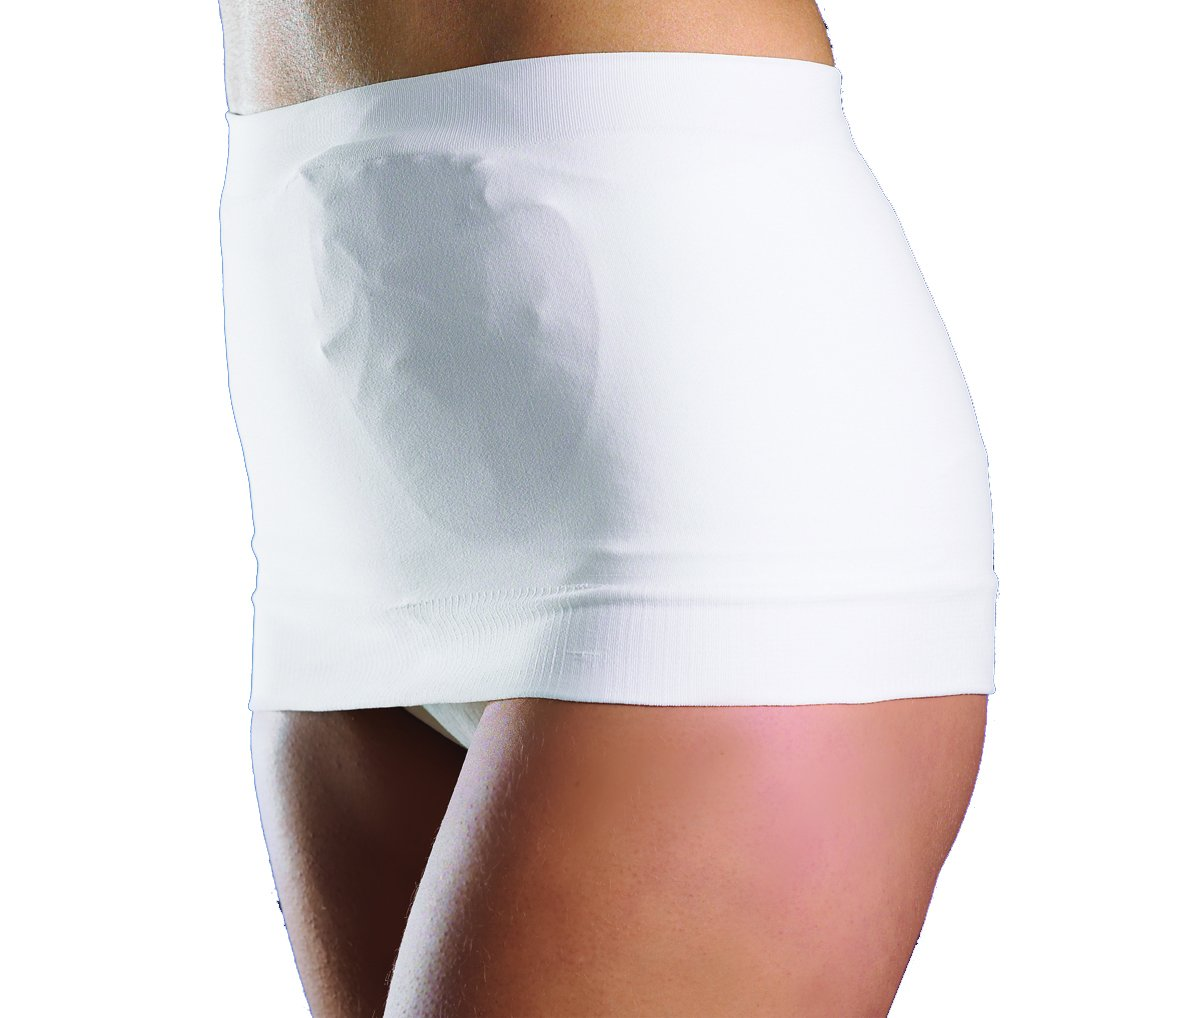 TYT32160402 - StomaSafe Plus Ostomy Support Garment, Medium/Large, 41-1/2 - 49-1/2 Hip Circumference, White 3216 51-04.02.T50